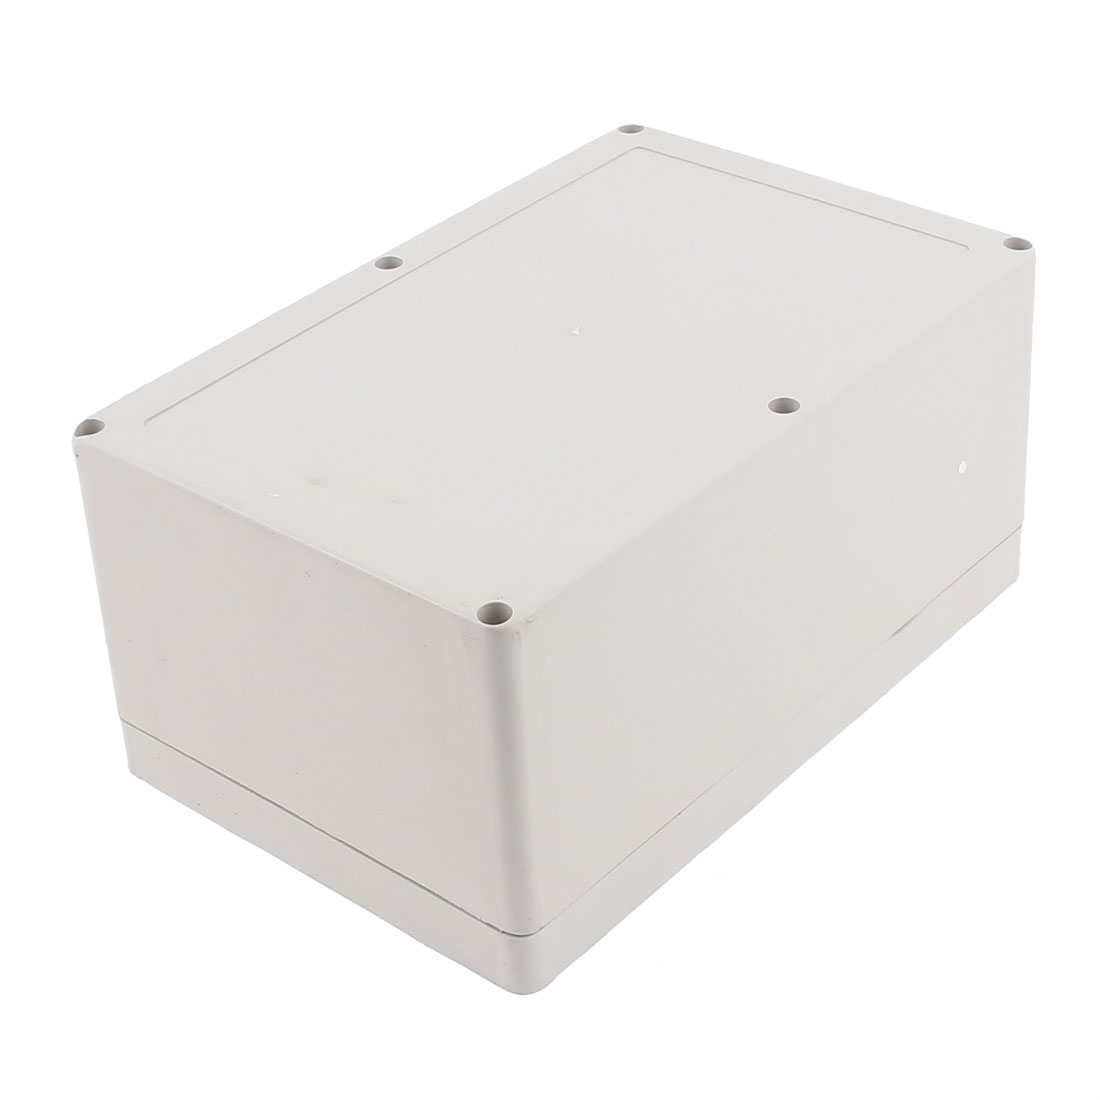 230 x 150 x 110mm Dustproof IP65 Junction Box Terminal Connecting Box Enclosure